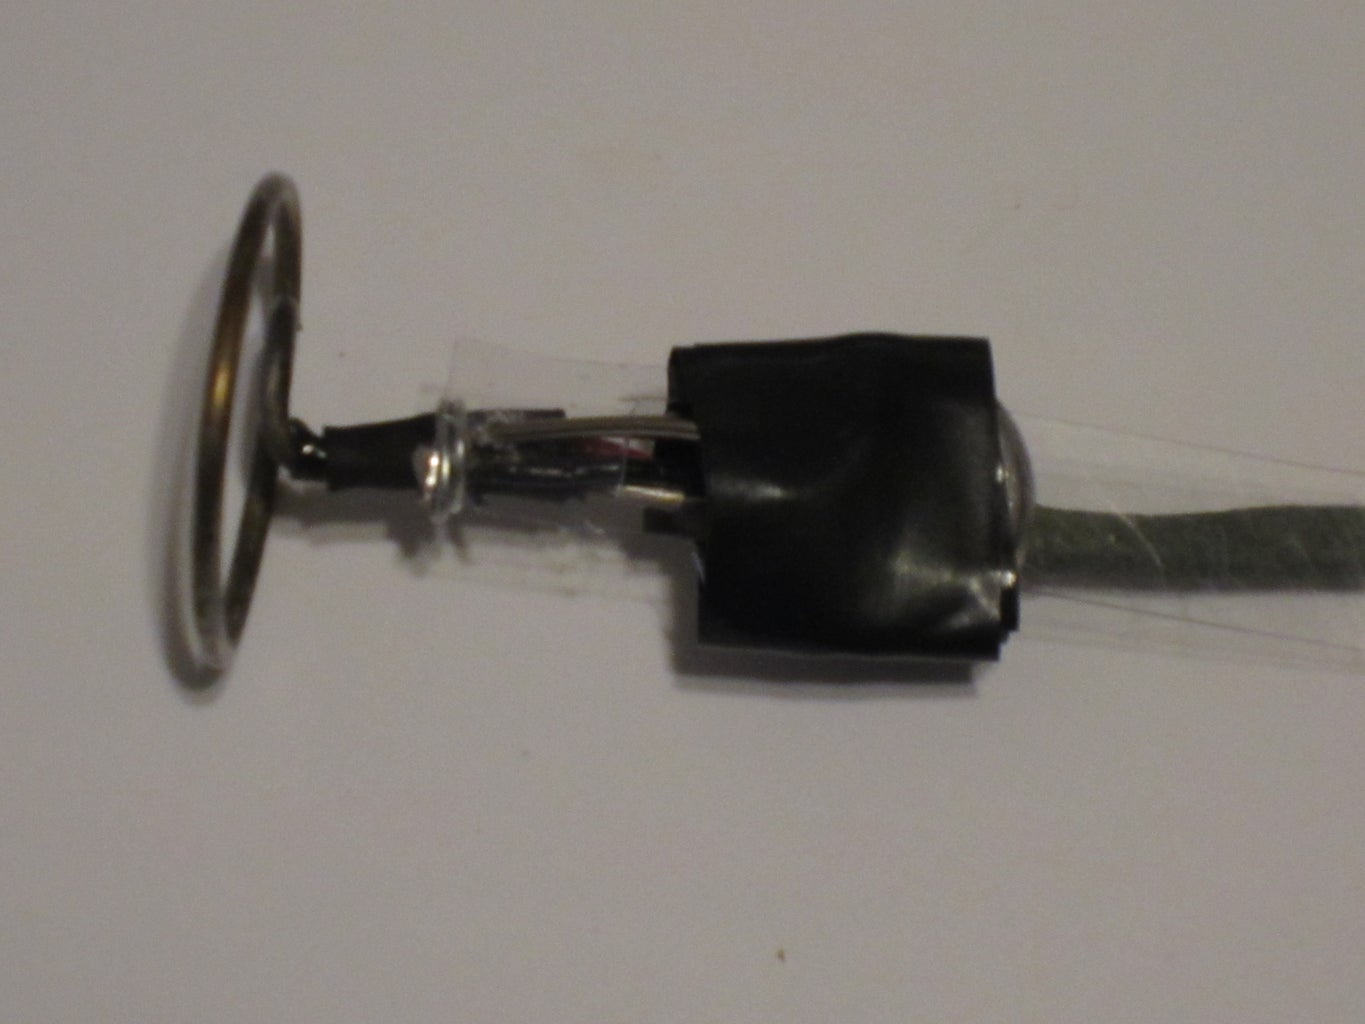 Battery and Switch